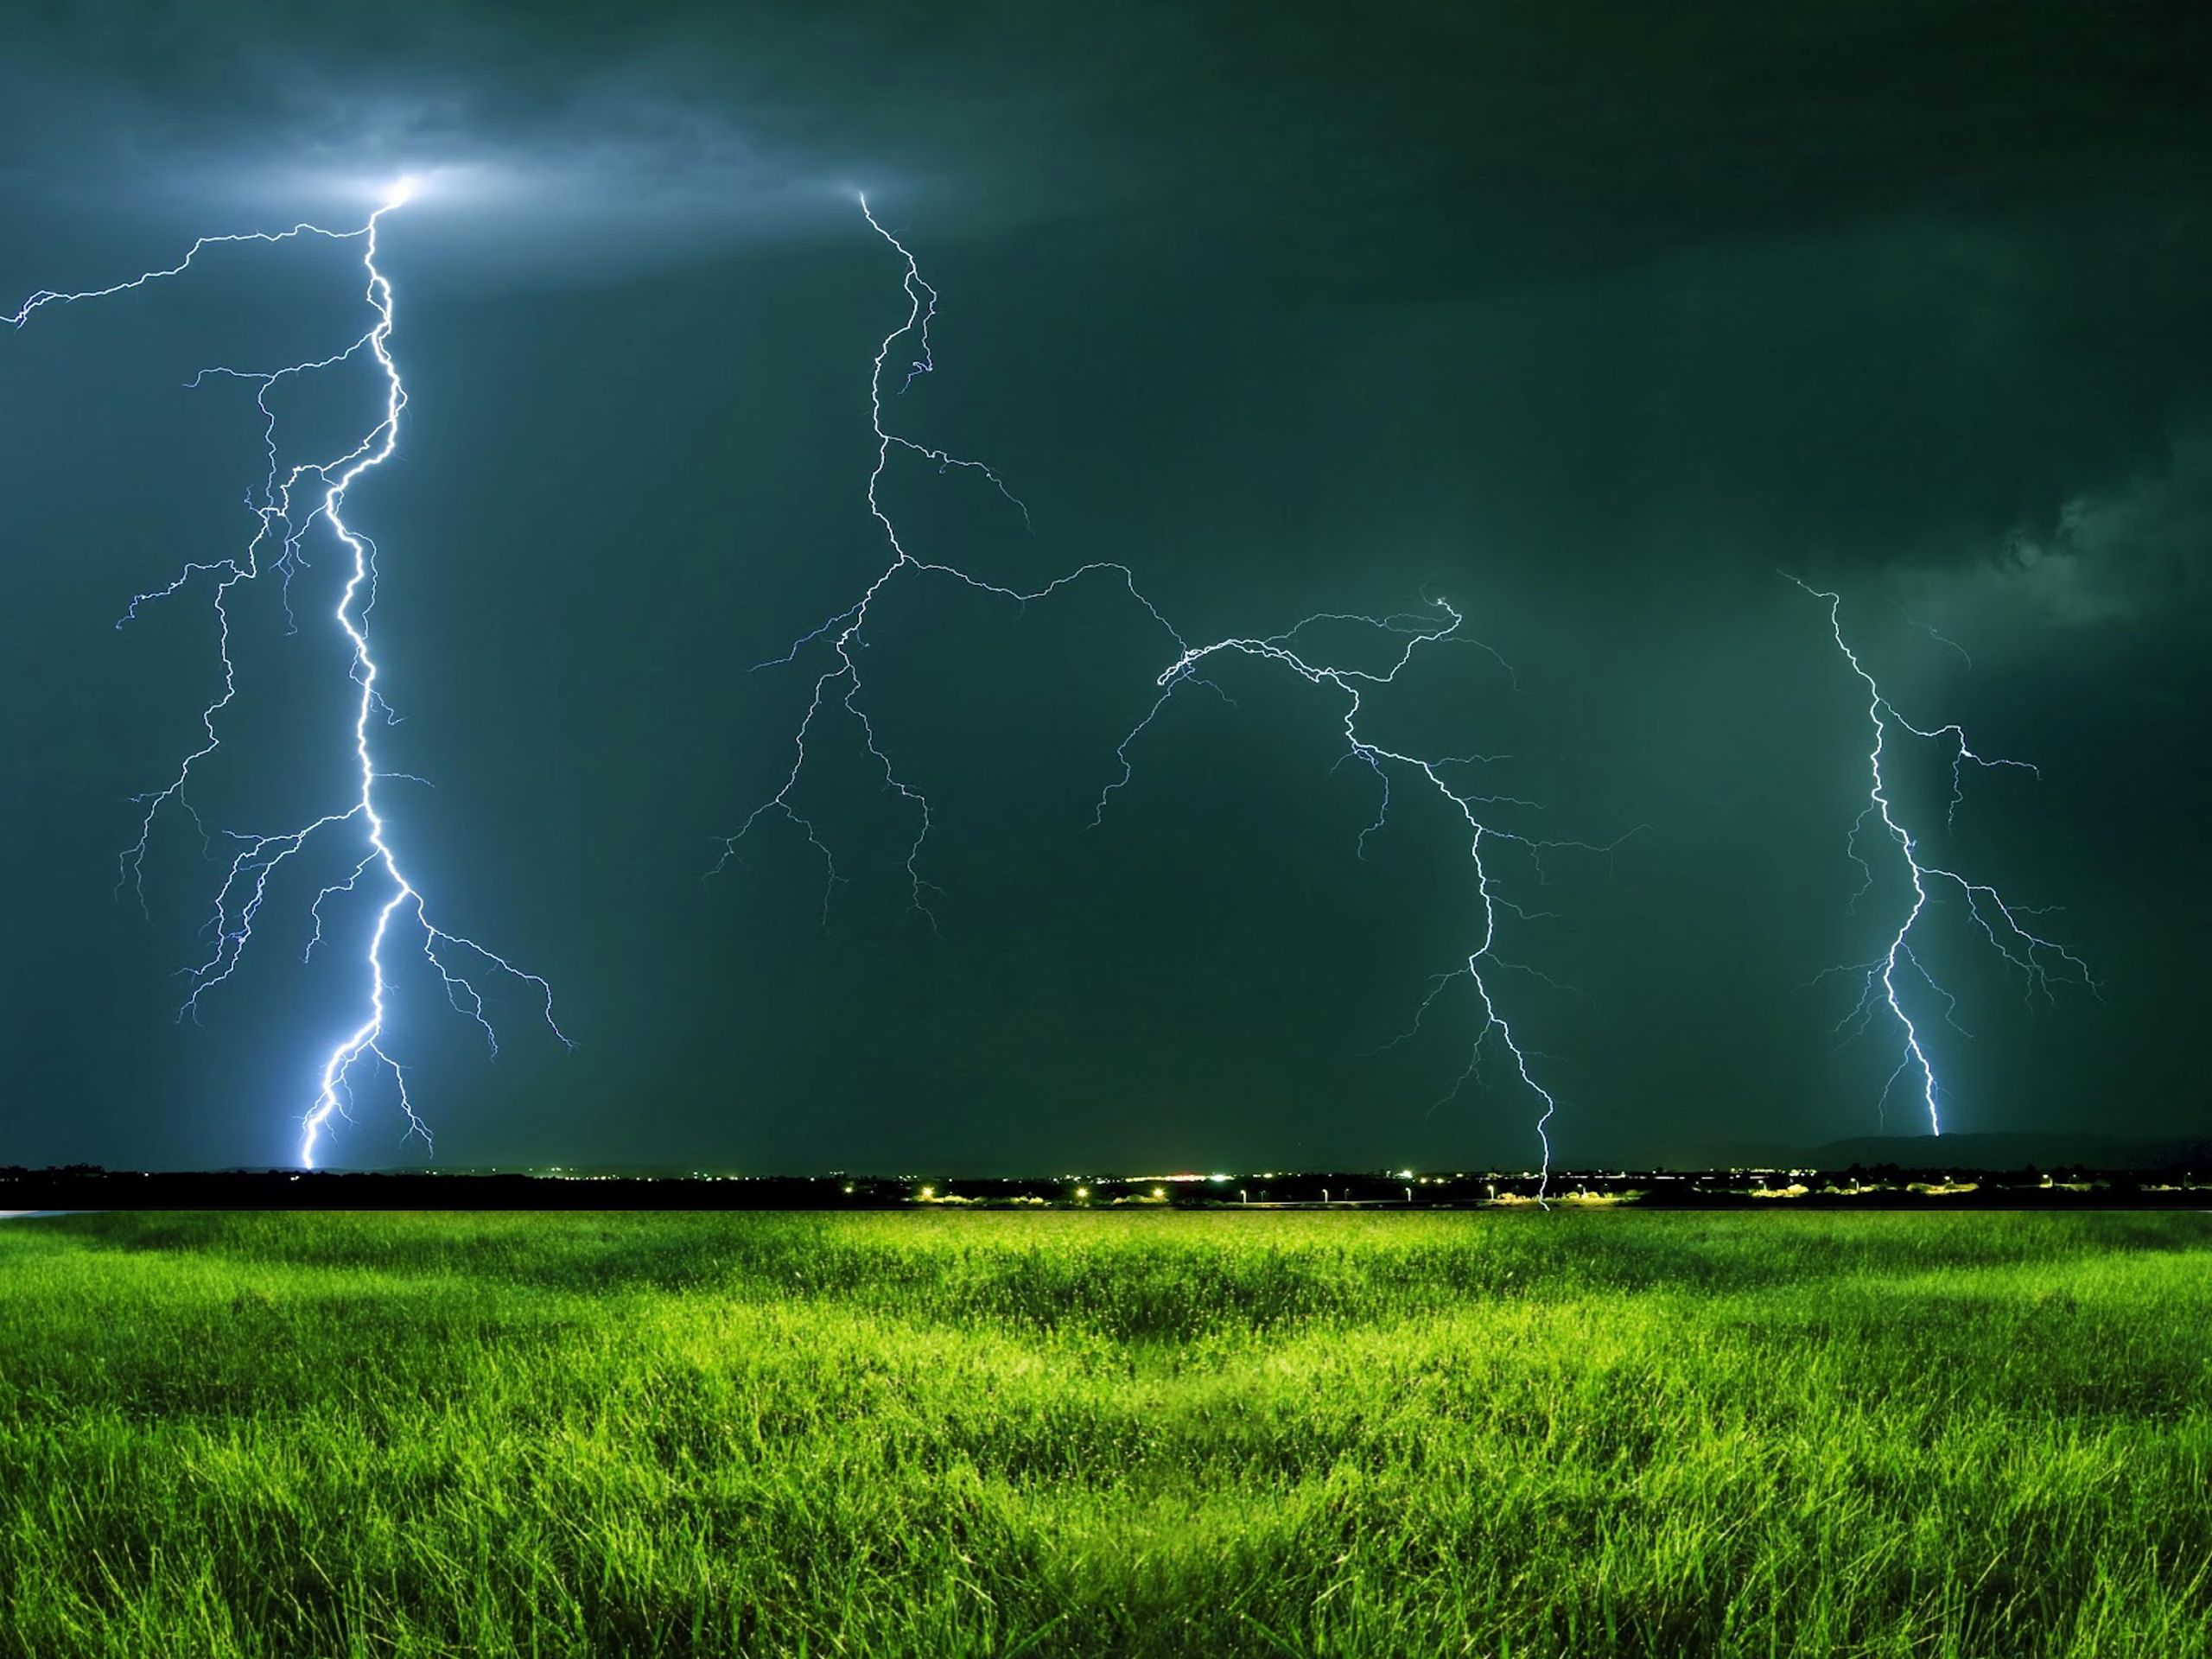 Hd Thunderstorm Wallpapers: Thunder And Lightning Storms